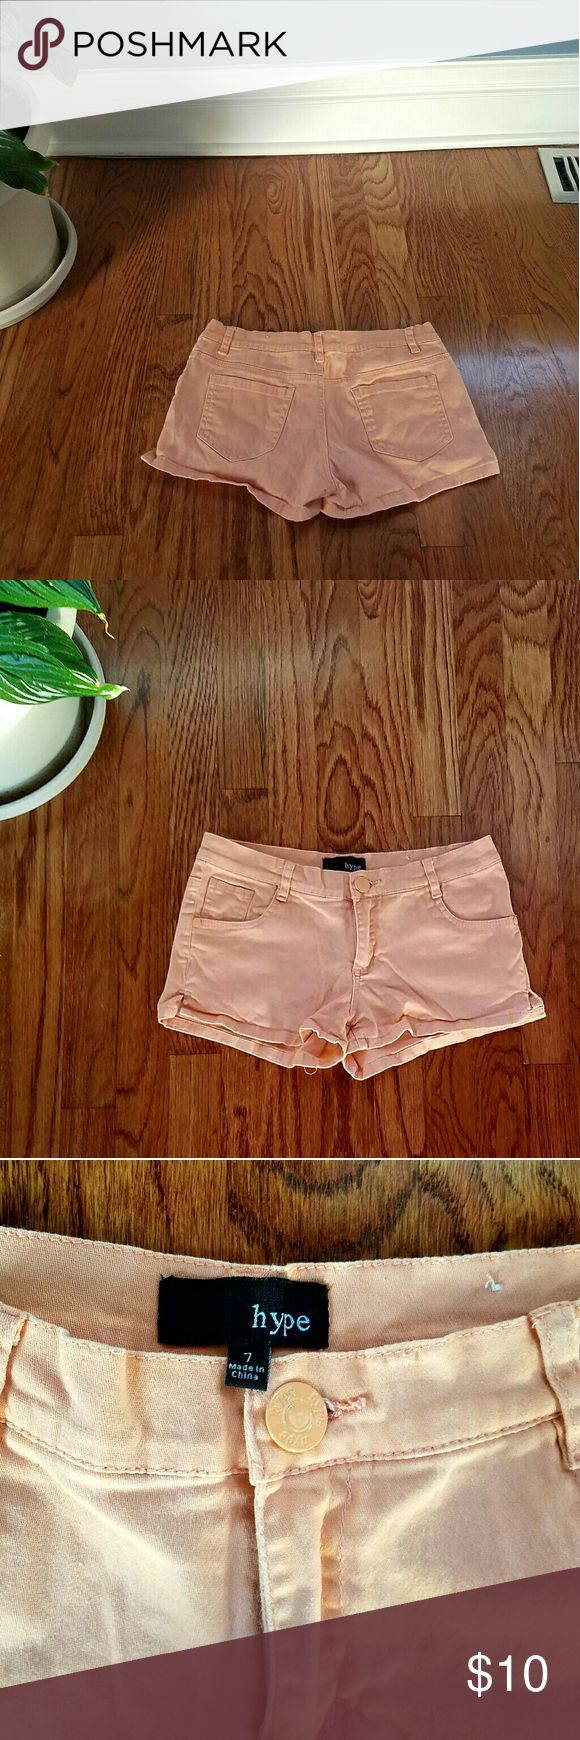 Hype peach shorts 🌻Light peach shorts. 🌻Soft material. 🌻Gently worn. 🌻From a pet and smoke free home. 🍂LOWEST🍂 Hype Shorts